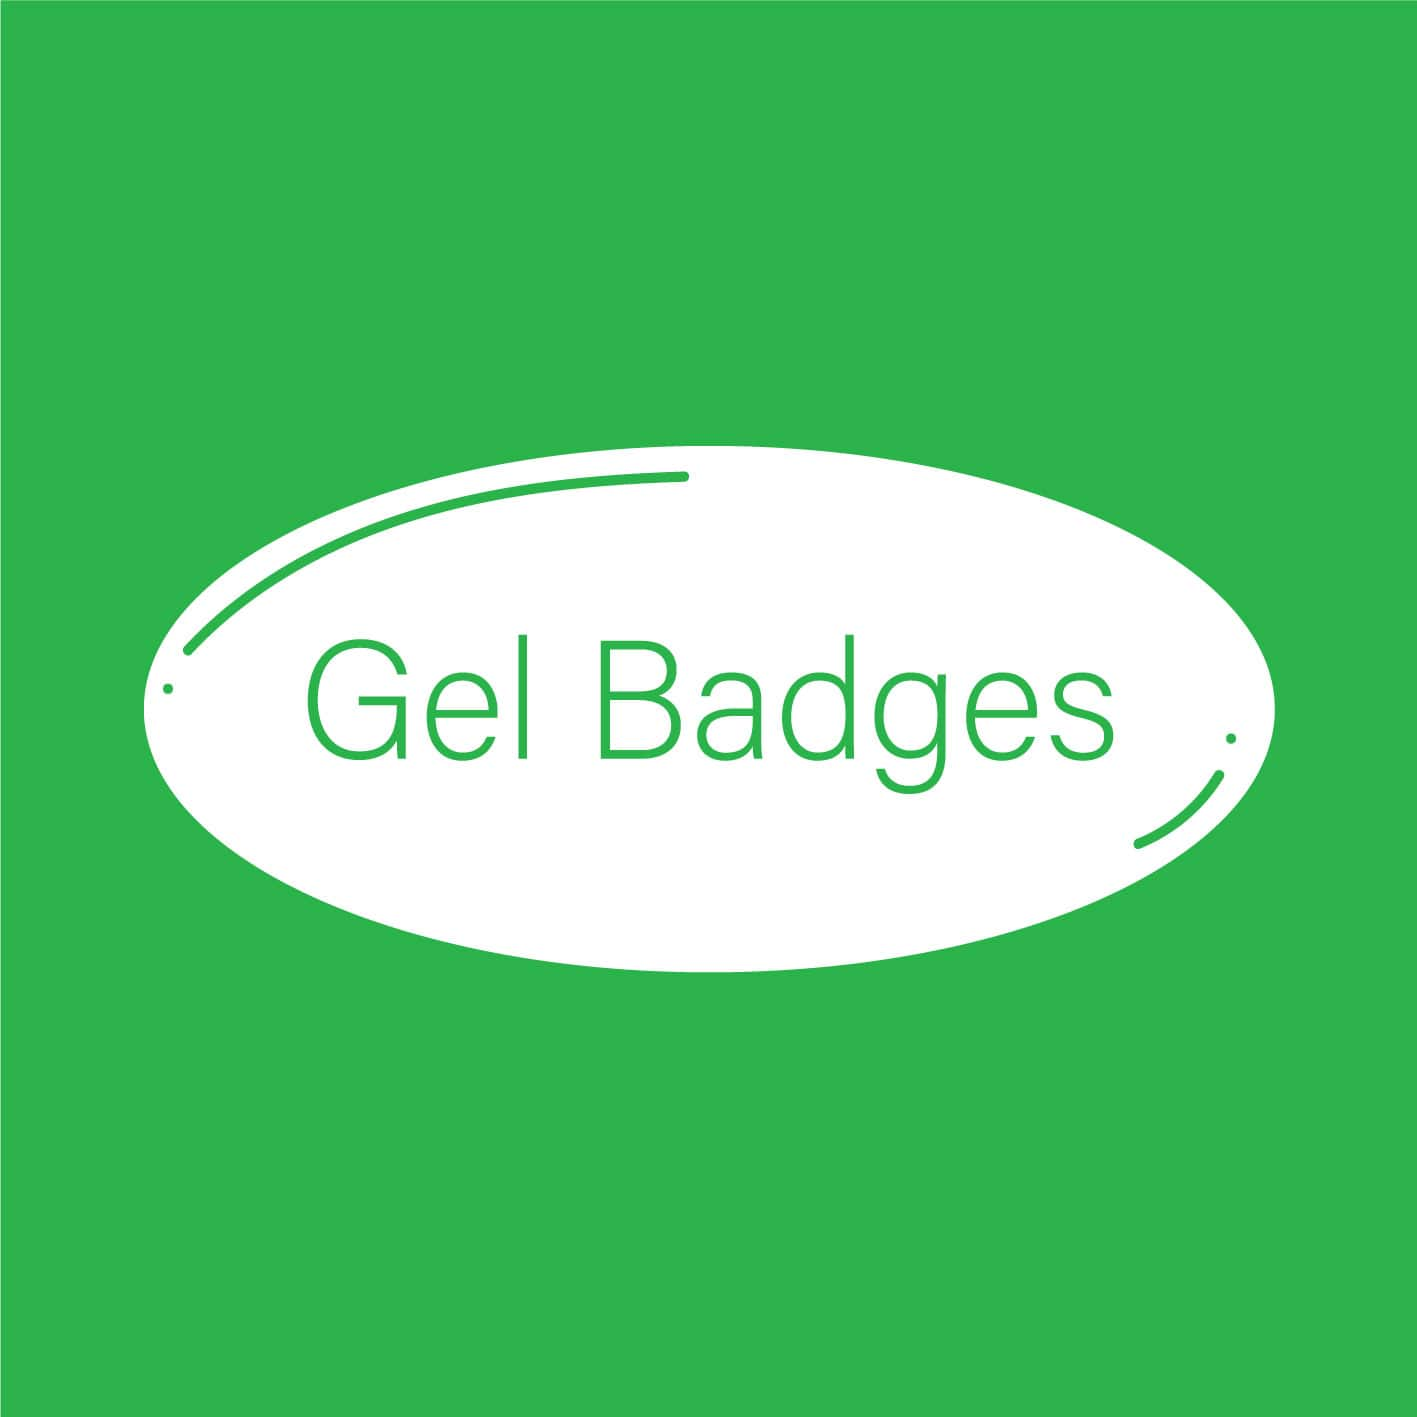 gel badges text on a green background